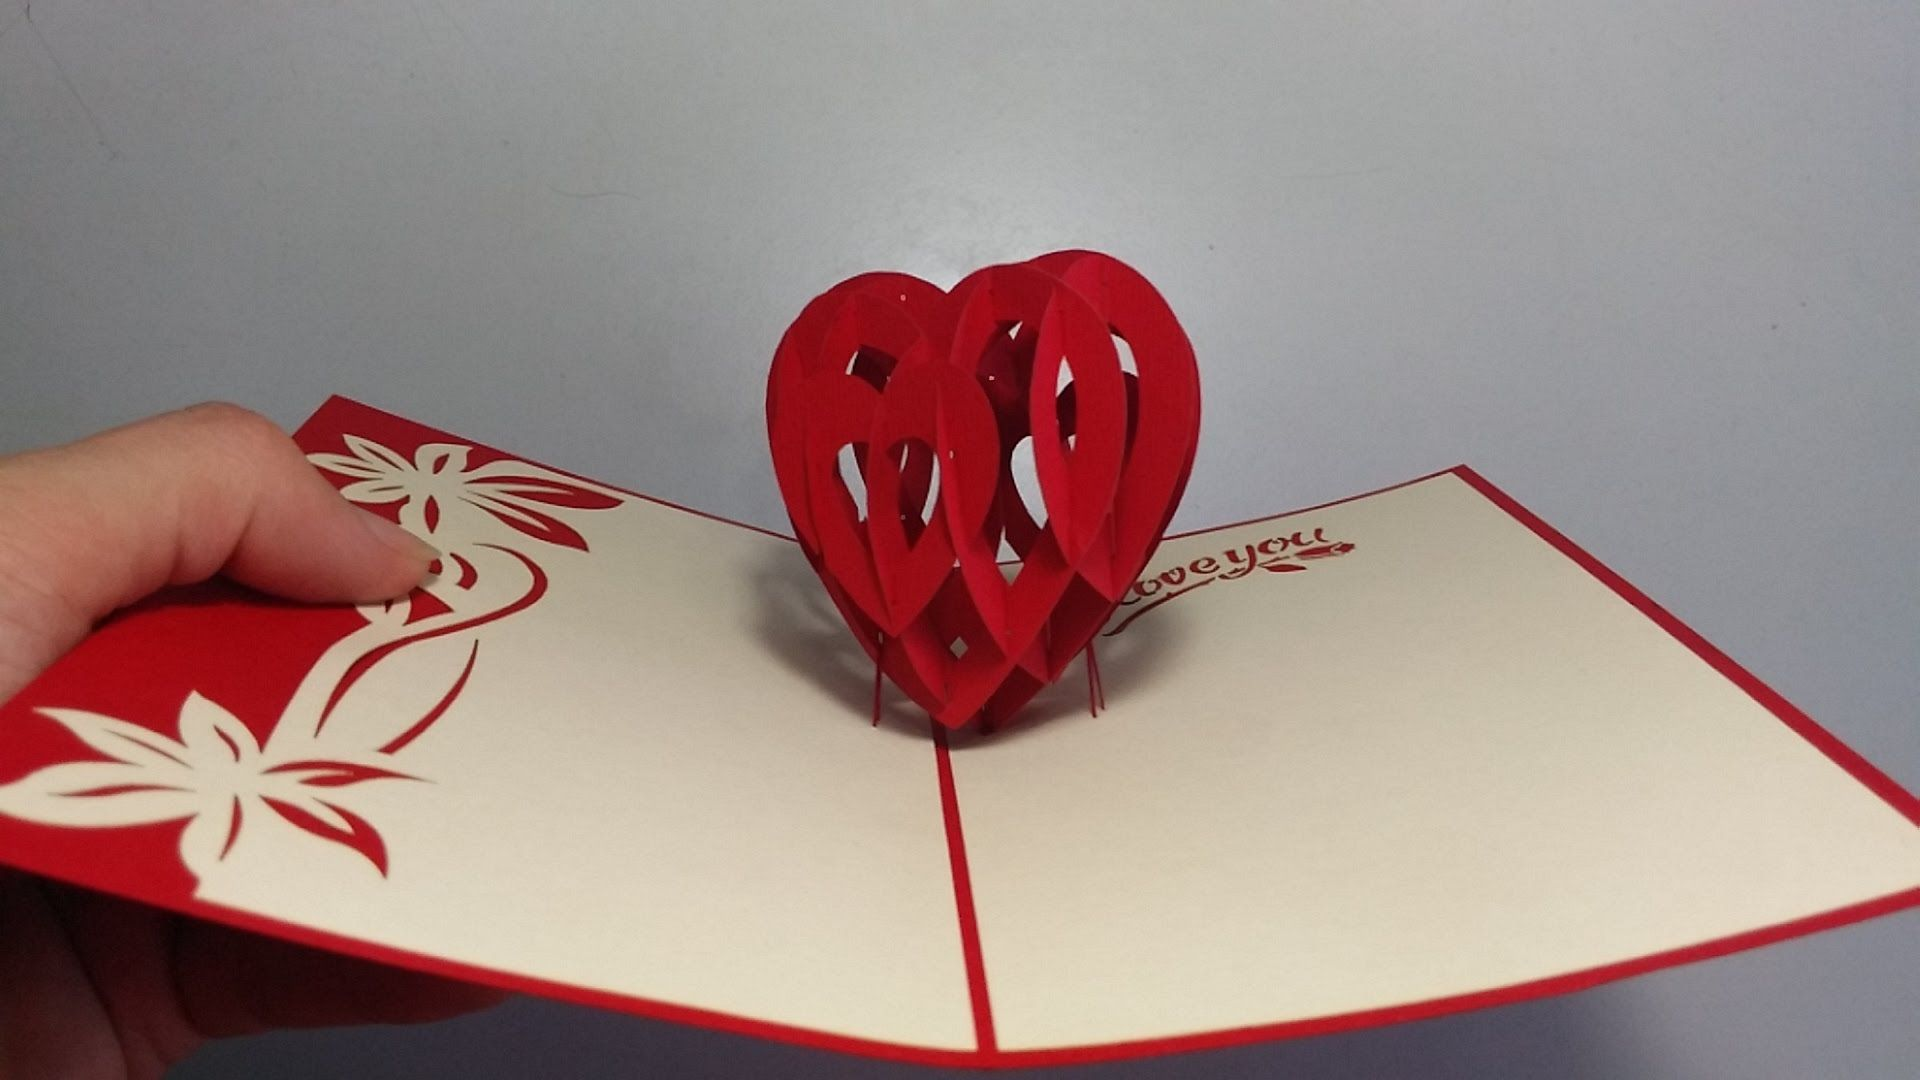 How To Make 3d Heart Valentine Day Pop Up Card Aoc Craft With 3d Heart Pop Up Card Template P Pop Up Valentine Cards Pop Up Card Templates Paper Crafts Cards